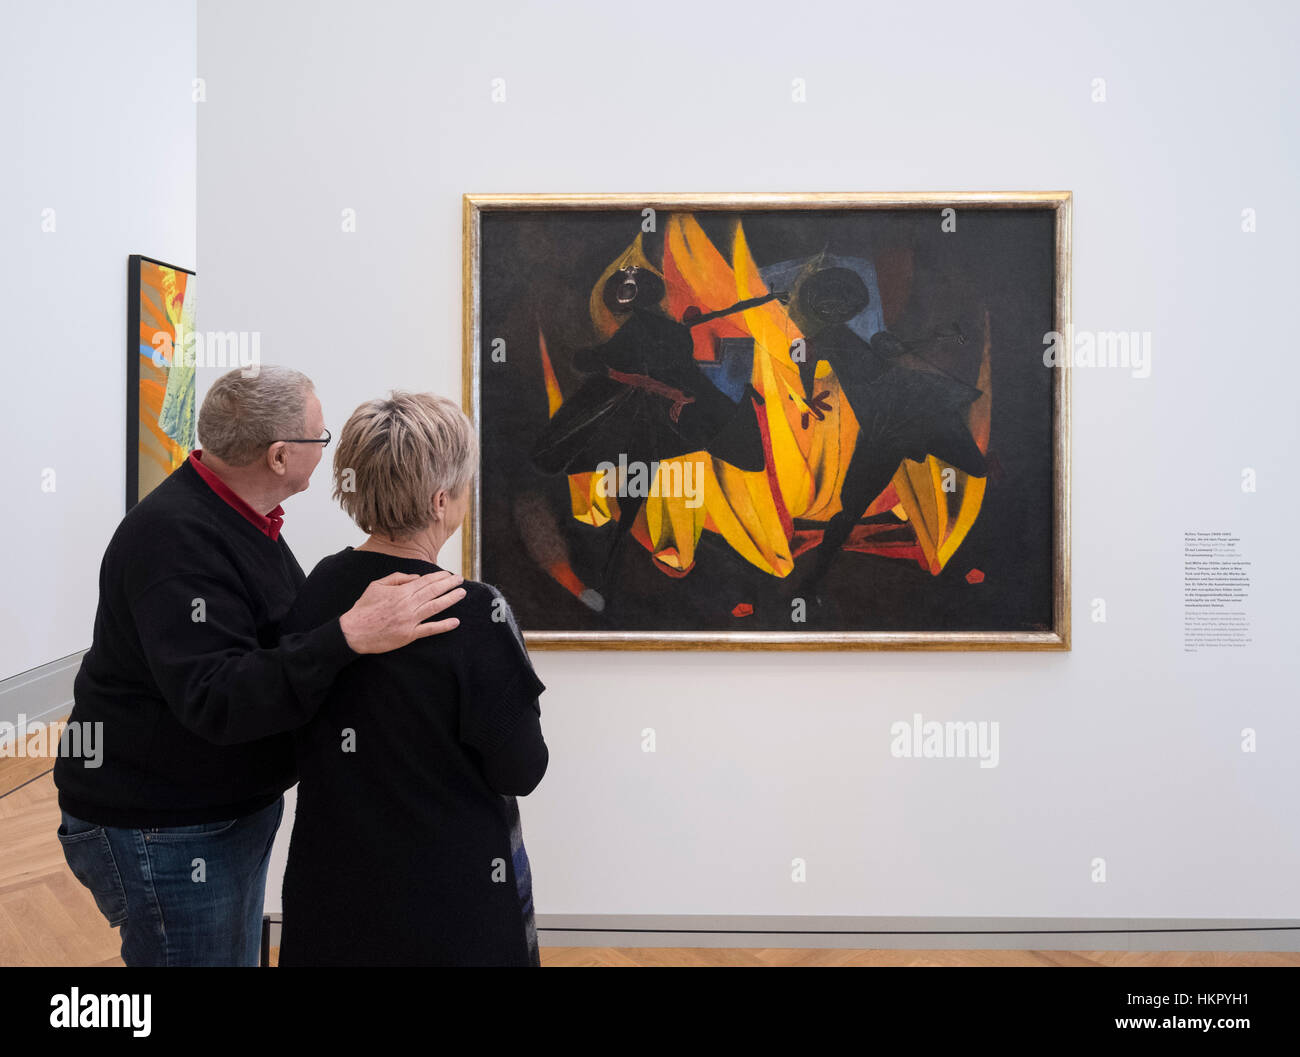 Visitor looking at painting, Children Playing With Fire by Rufino Tamayo at new Museum Barberini in Potsdam Germany - Stock Image